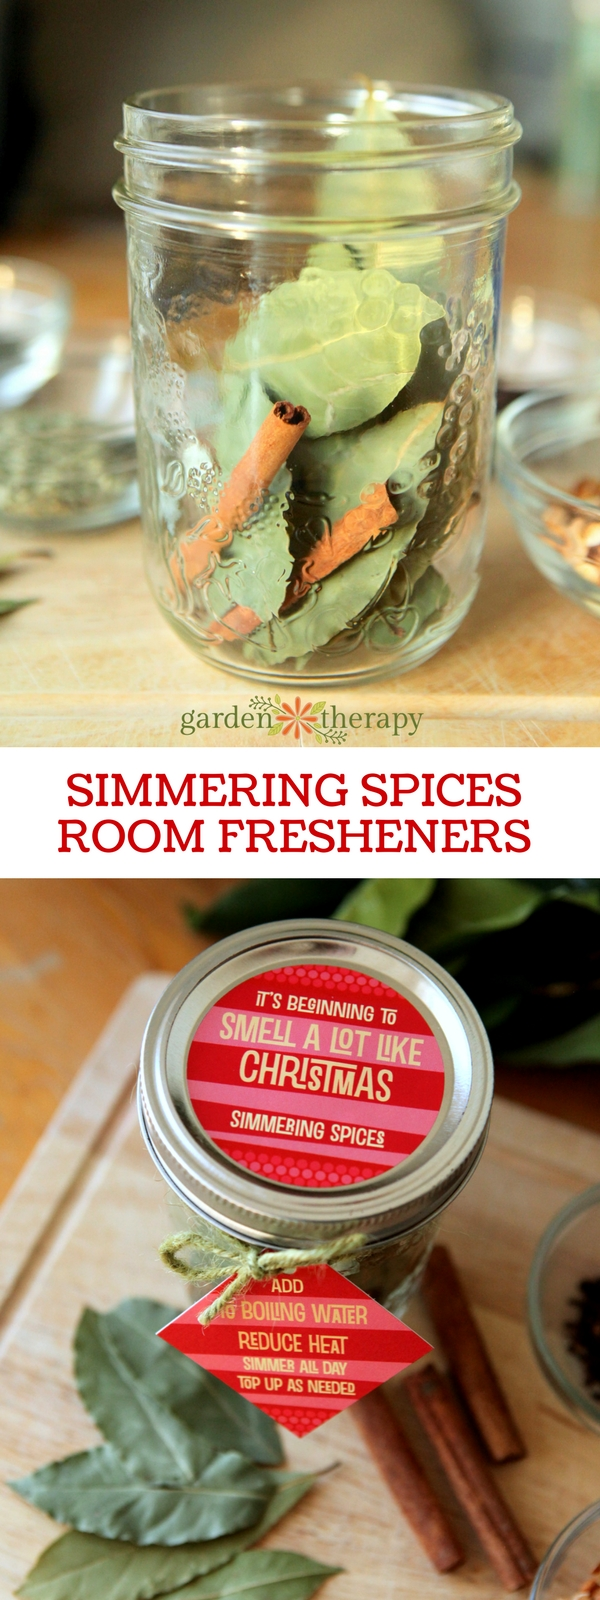 Make your home smell like the holidays with these simmering spices